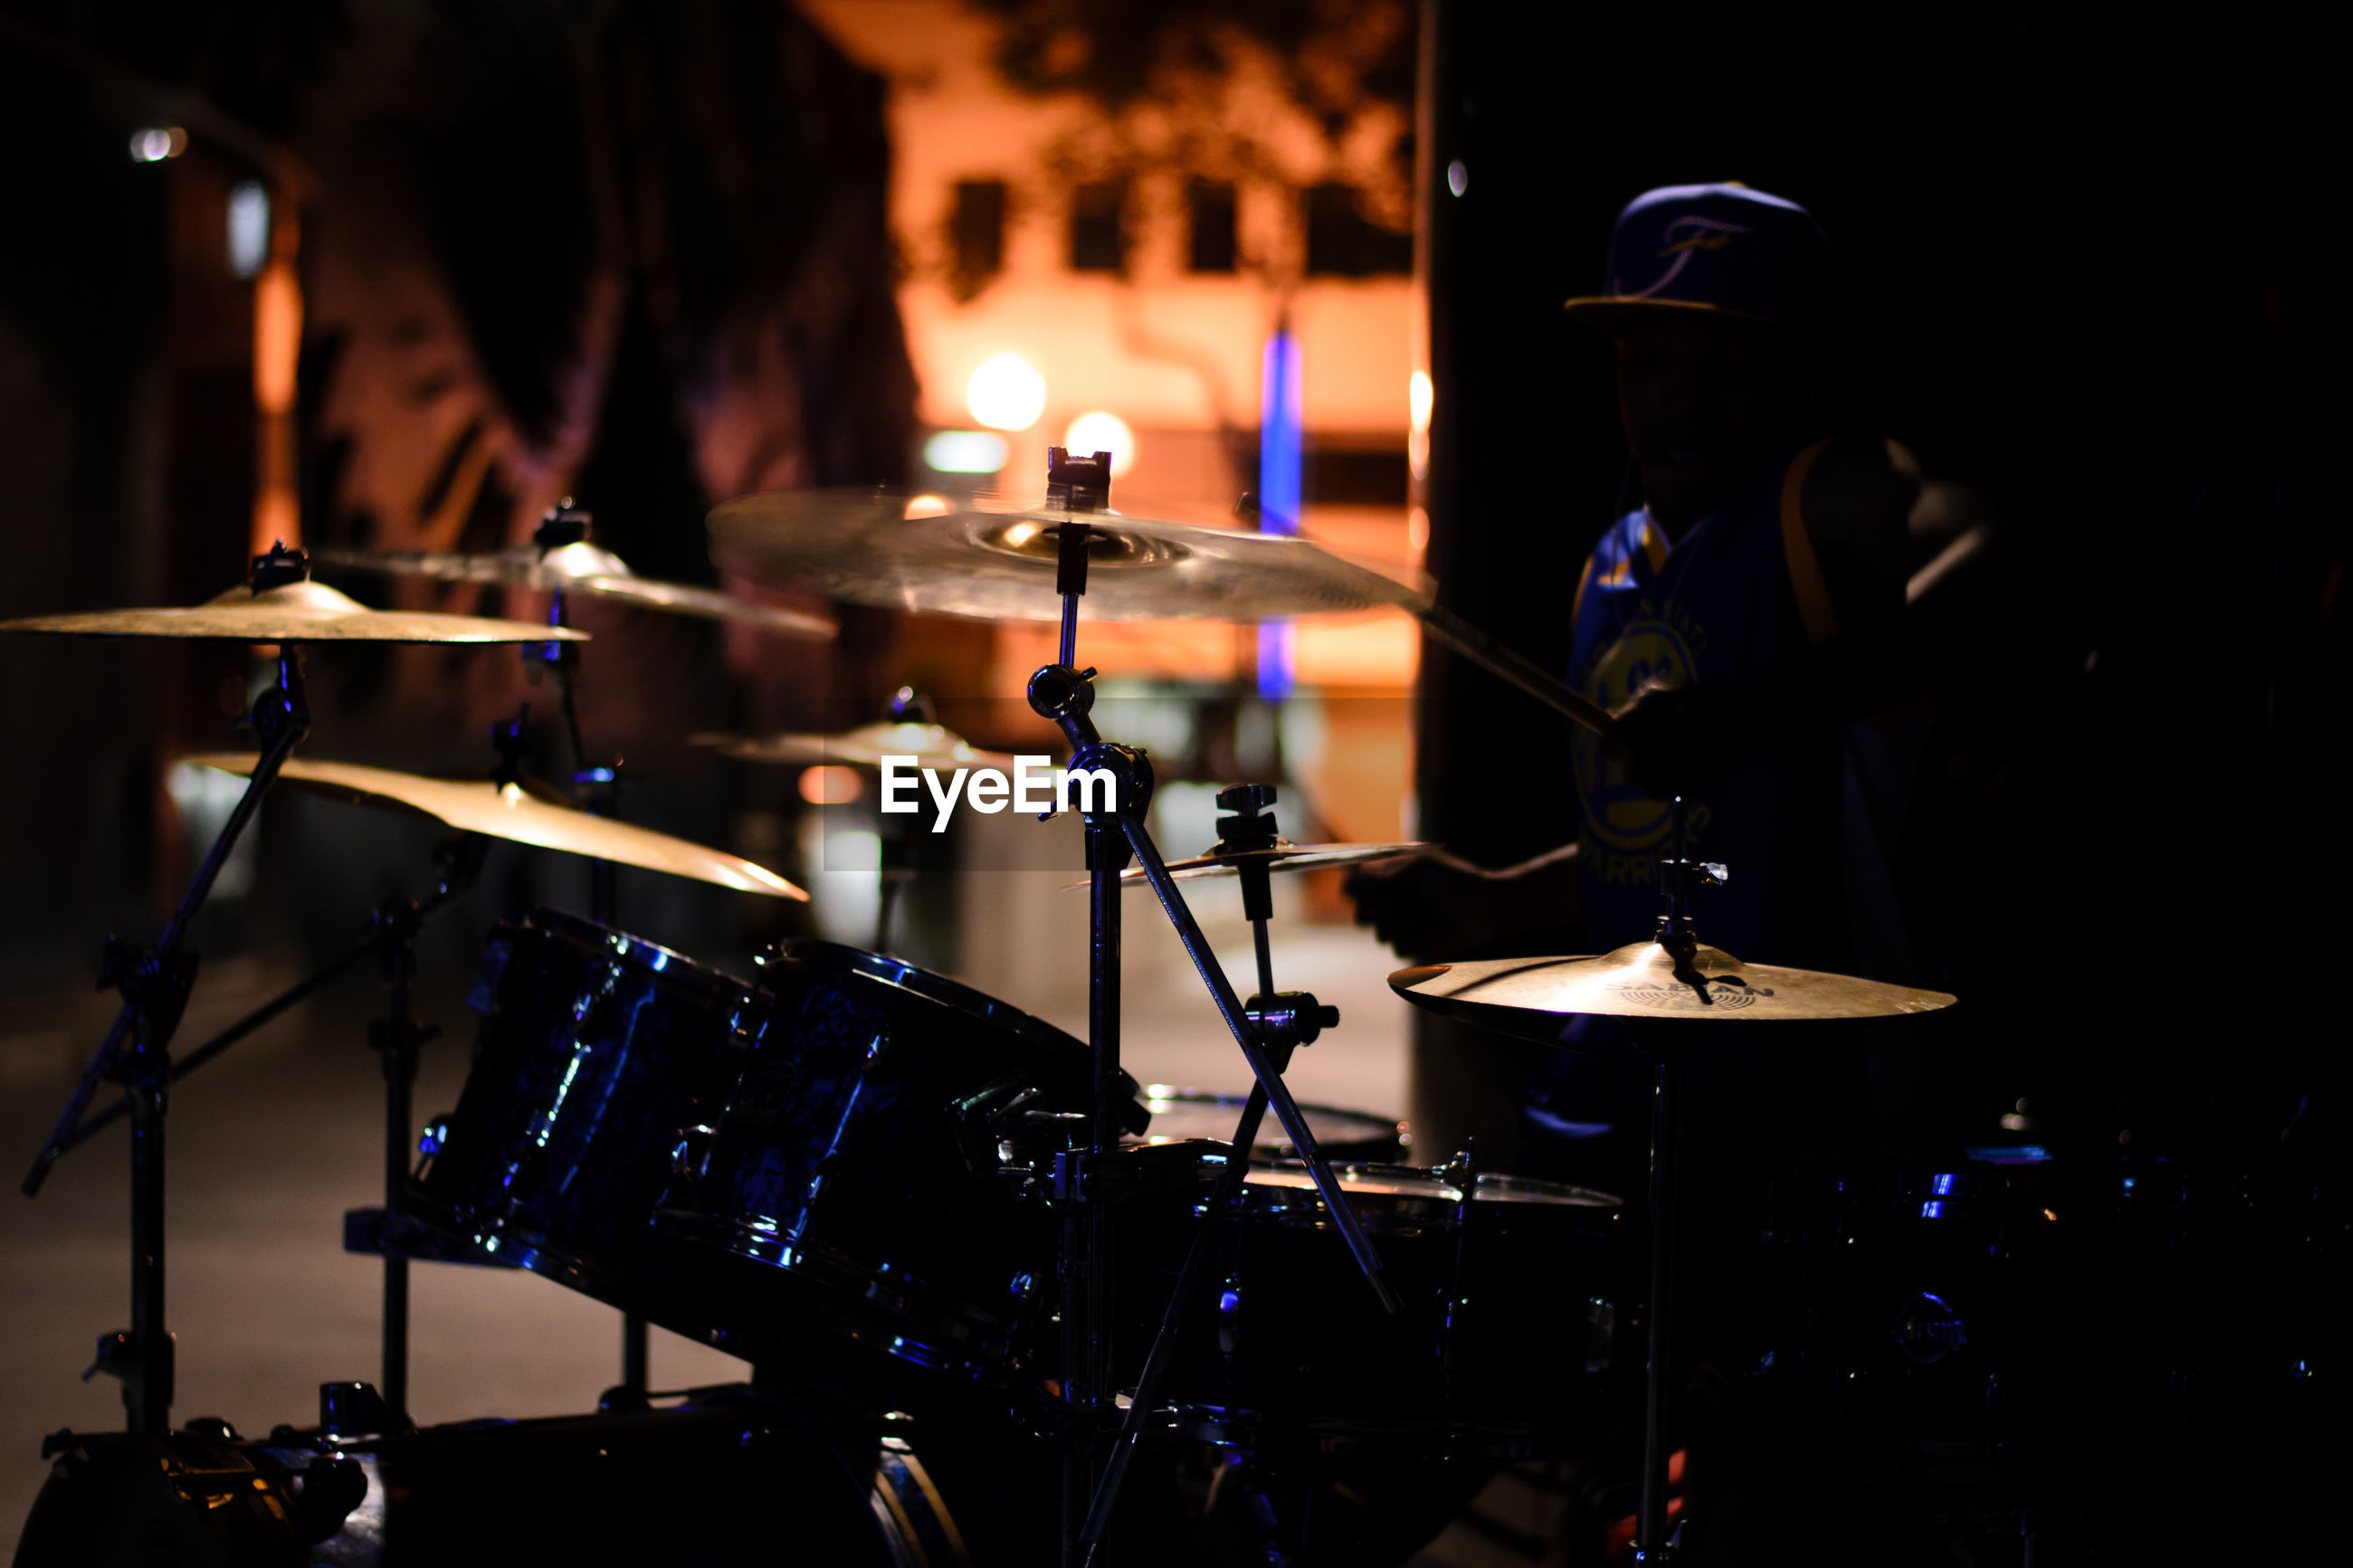 Drum kit on stage during popular music concert